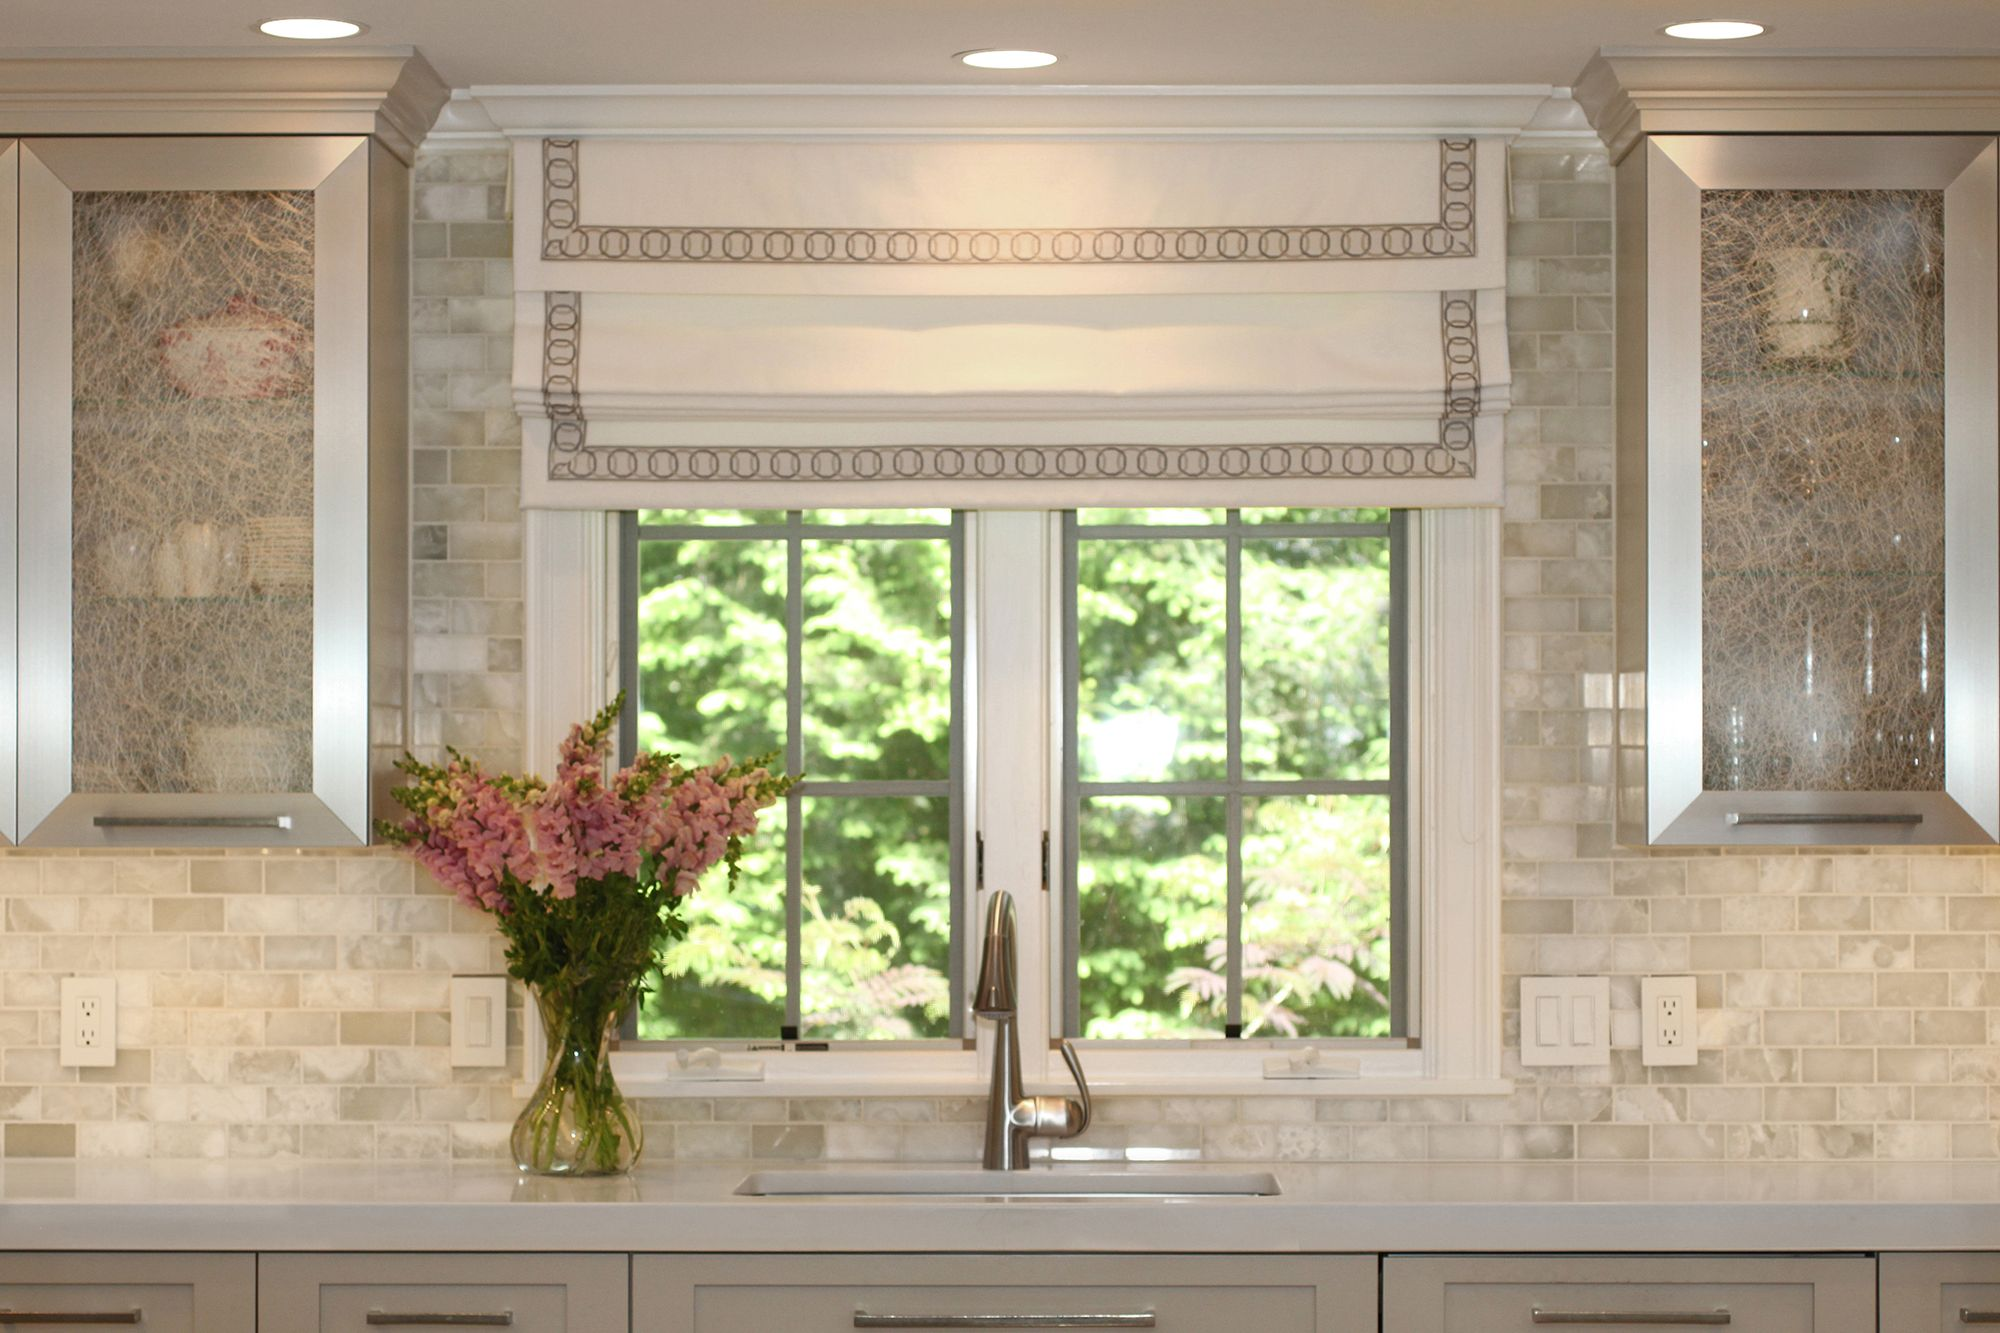 Luxurious details in this family room kitchen renovation include a luxurious details in this family room kitchen renovation include a white onyx subway tile backsplash dailygadgetfo Images